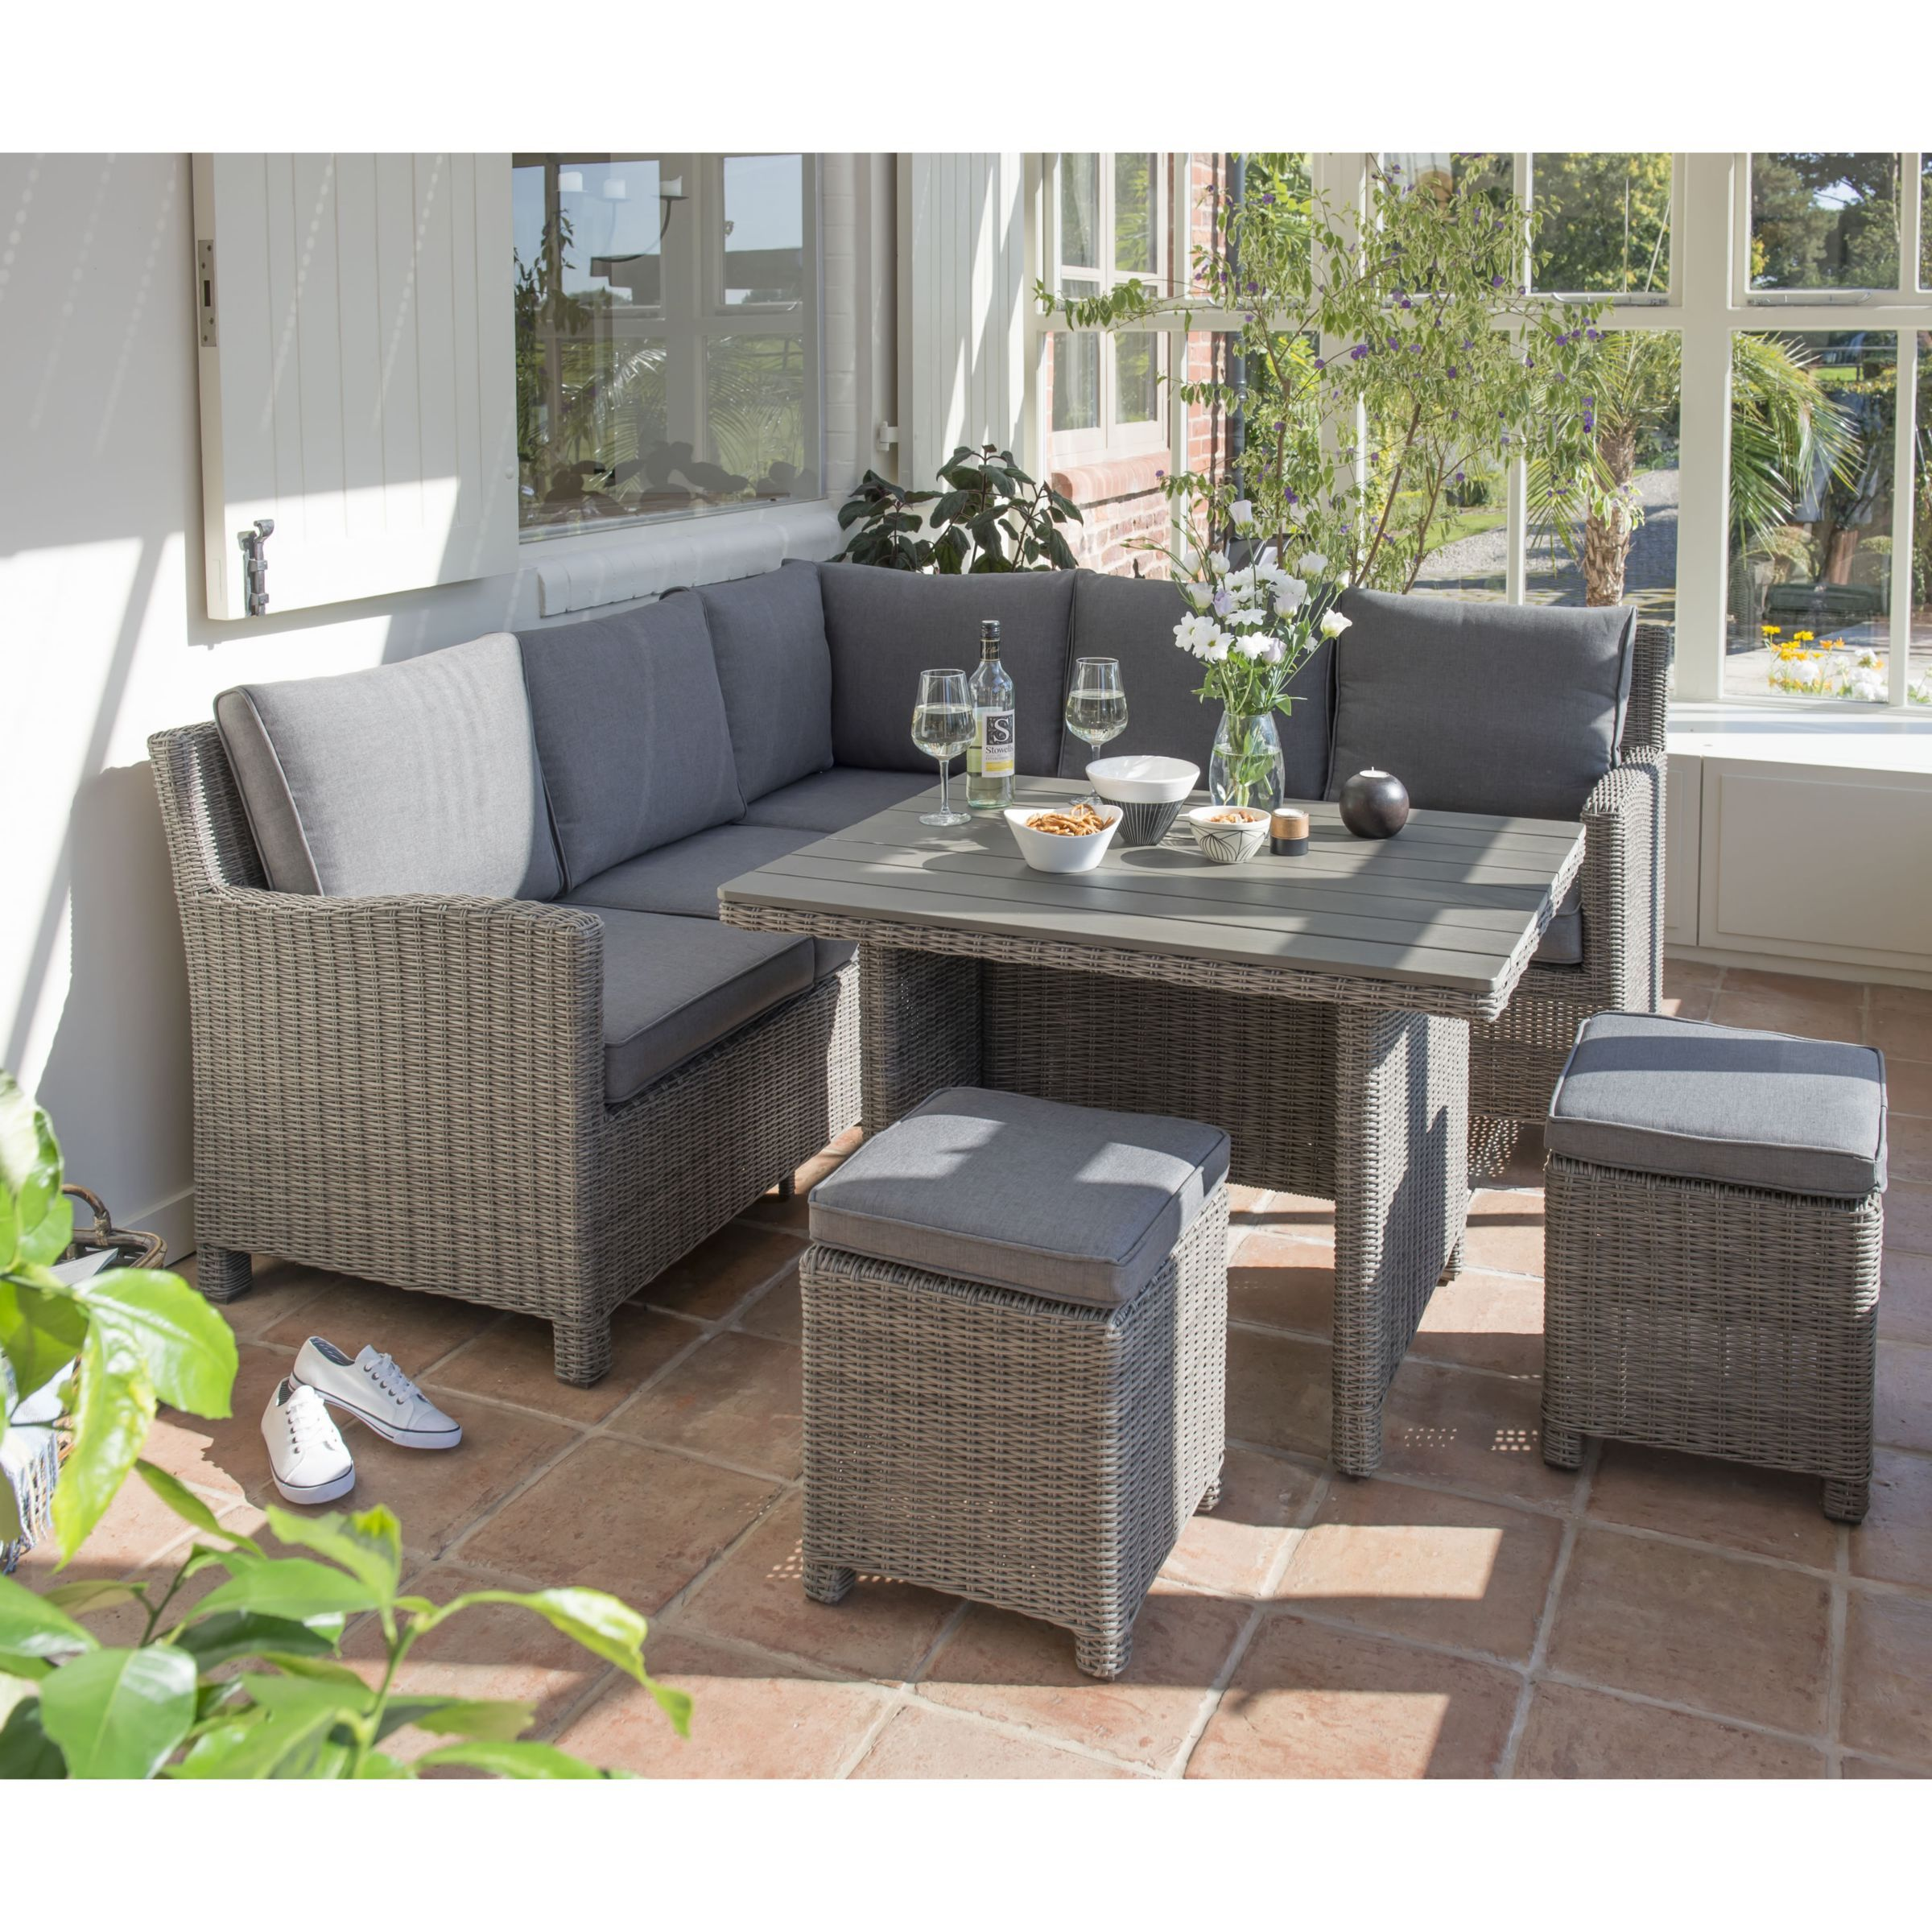 KETTLER Palma 9 Seater Garden Mini Corner Table and Chairs Set